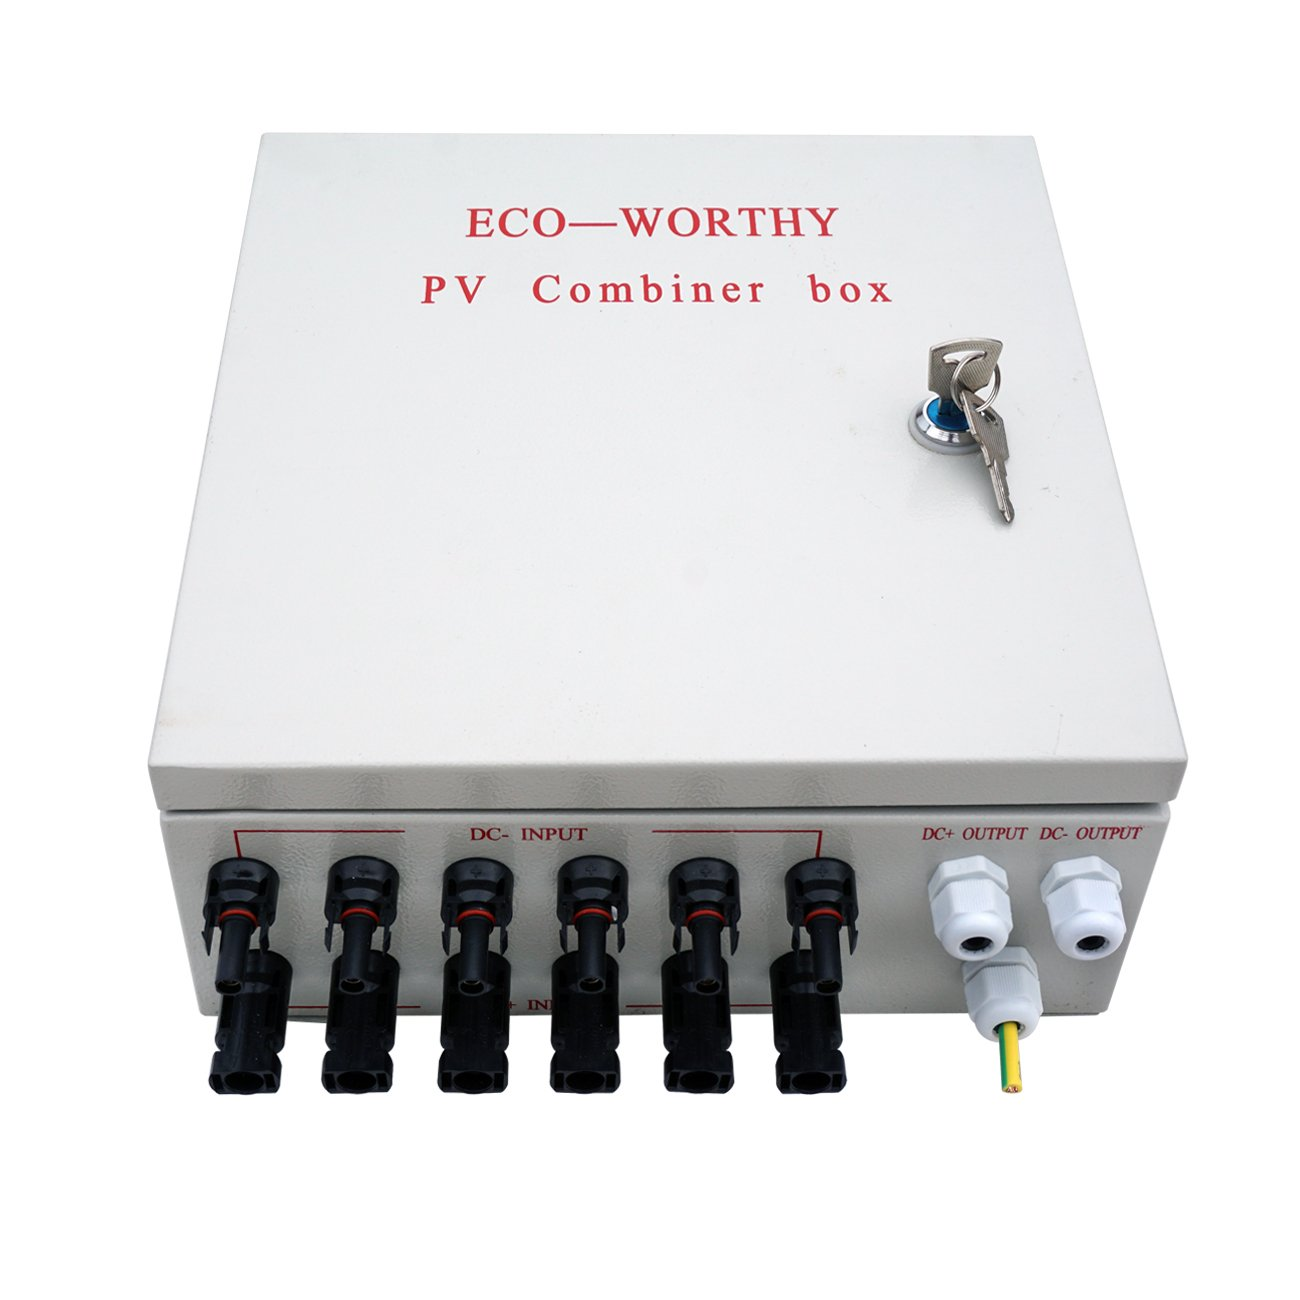 ECO-WORTHY 6 String PV Combiner Joint Box & 10A Circuit Breakers for Solar Panel by ECO-WORTHY